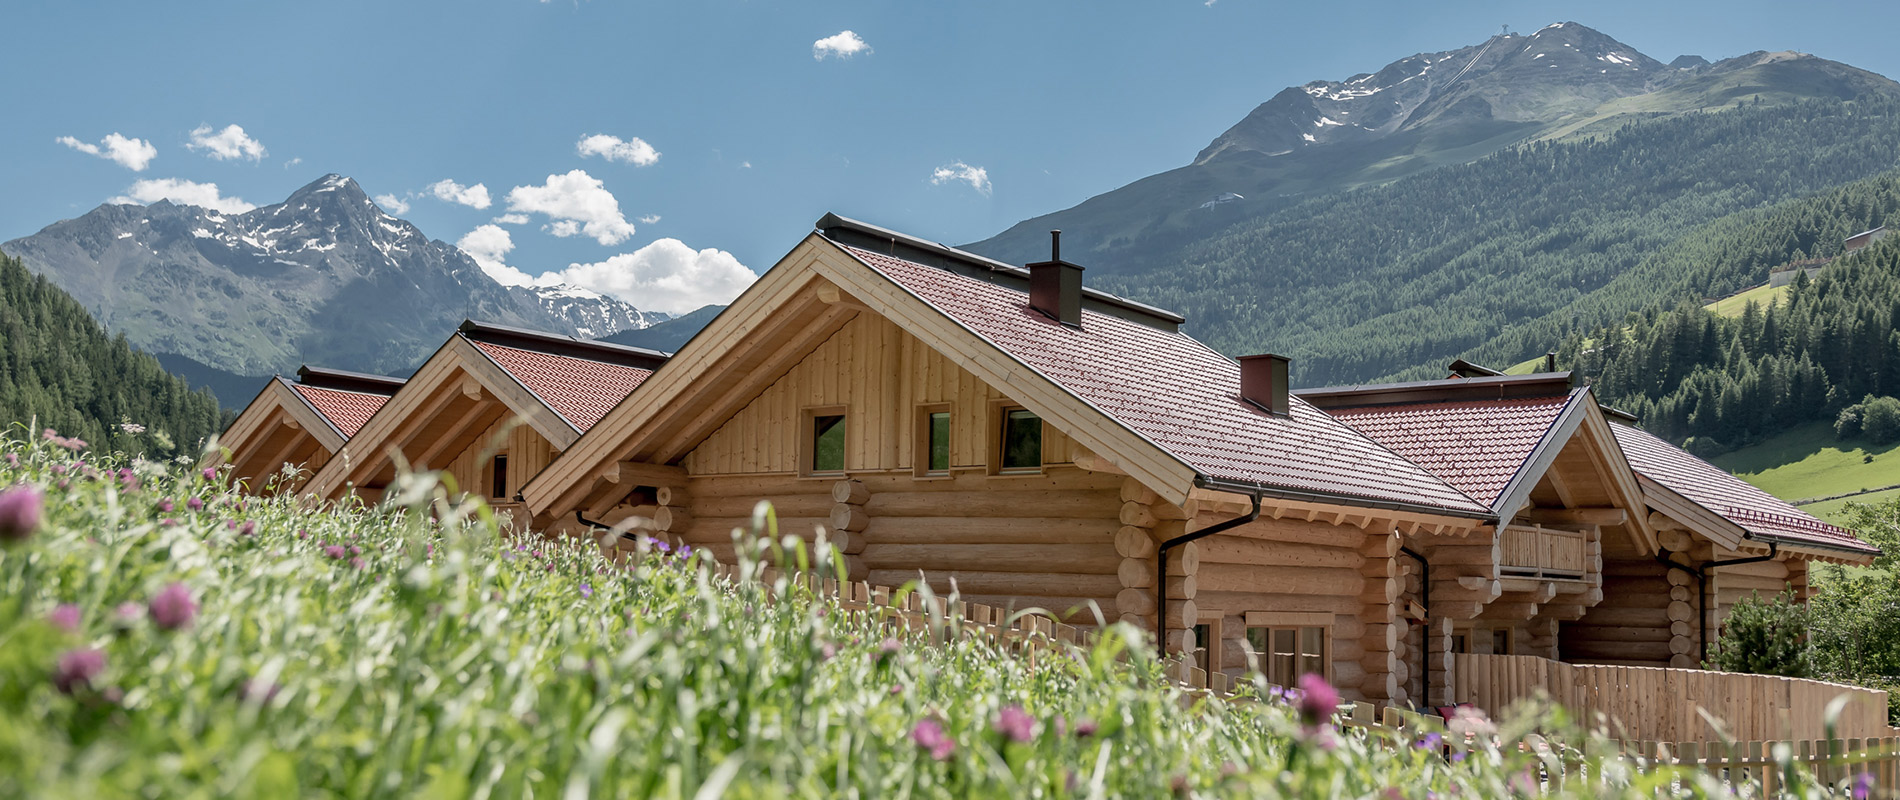 Chalet Soelden - Resort & Wines